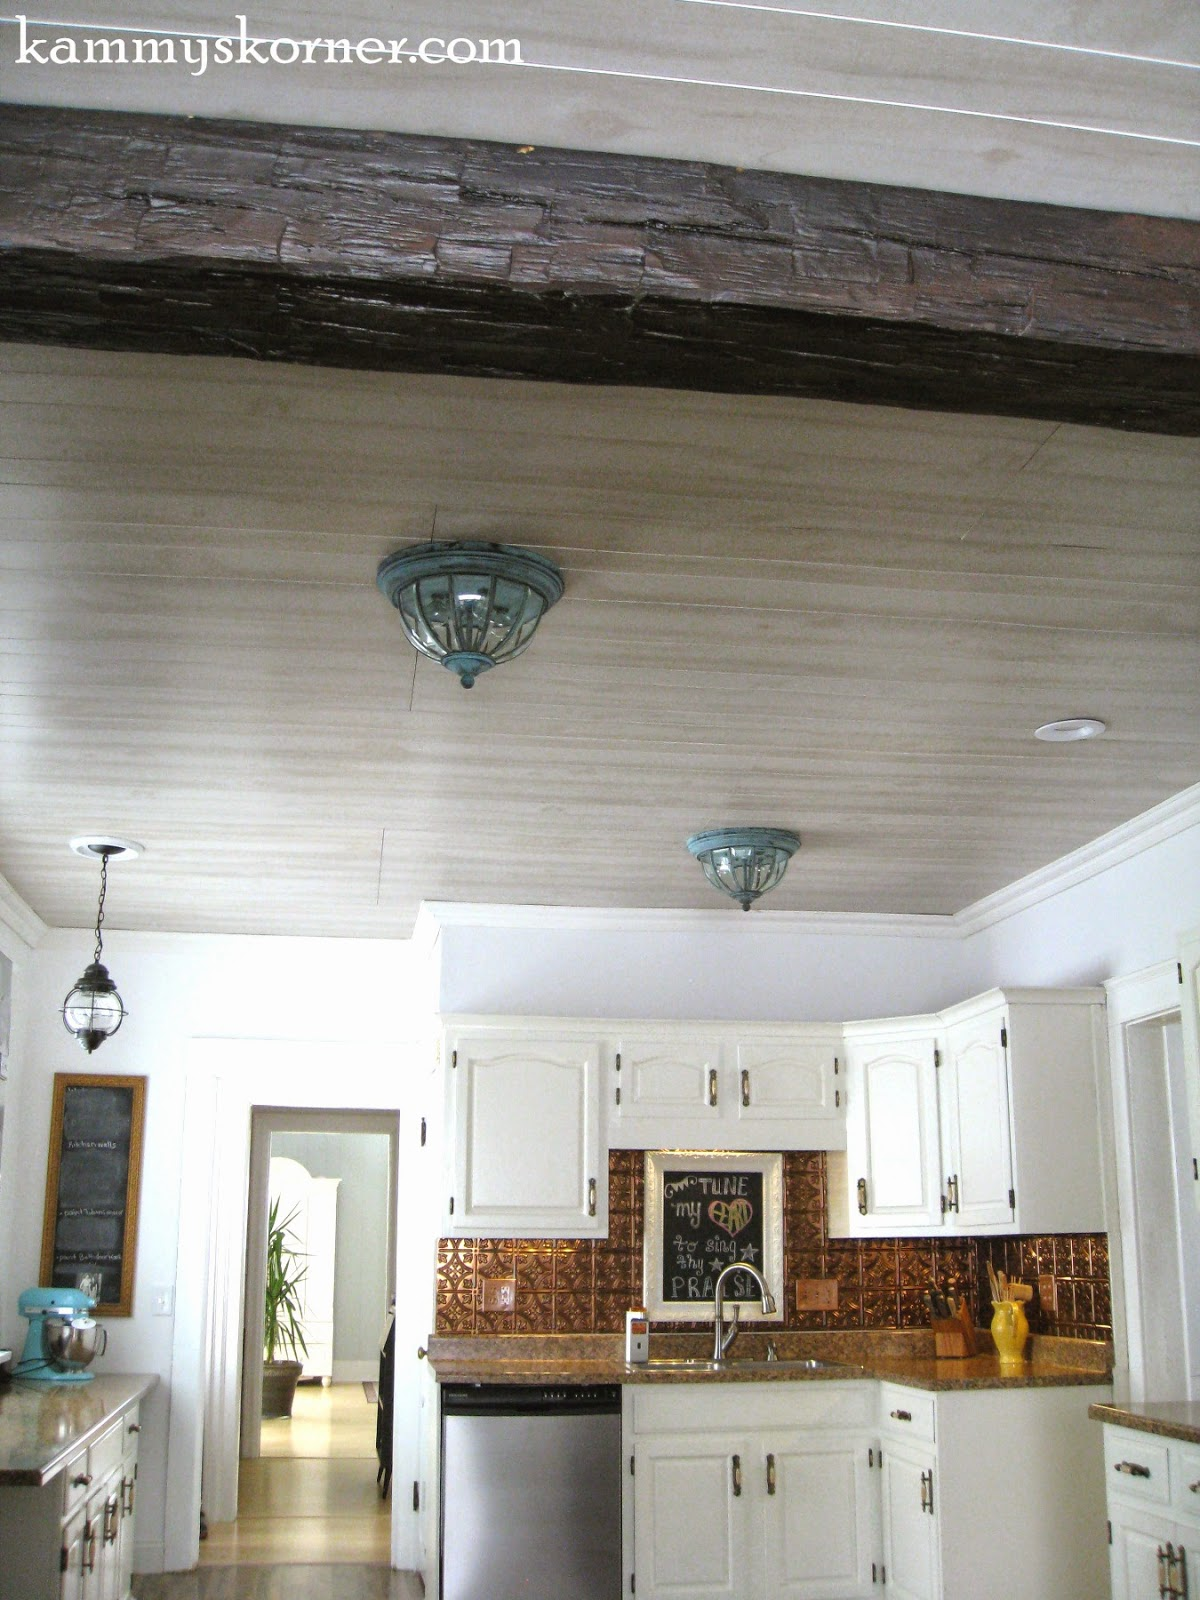 Kammy S Korner Whitewash Paneled Kitchen Ceiling